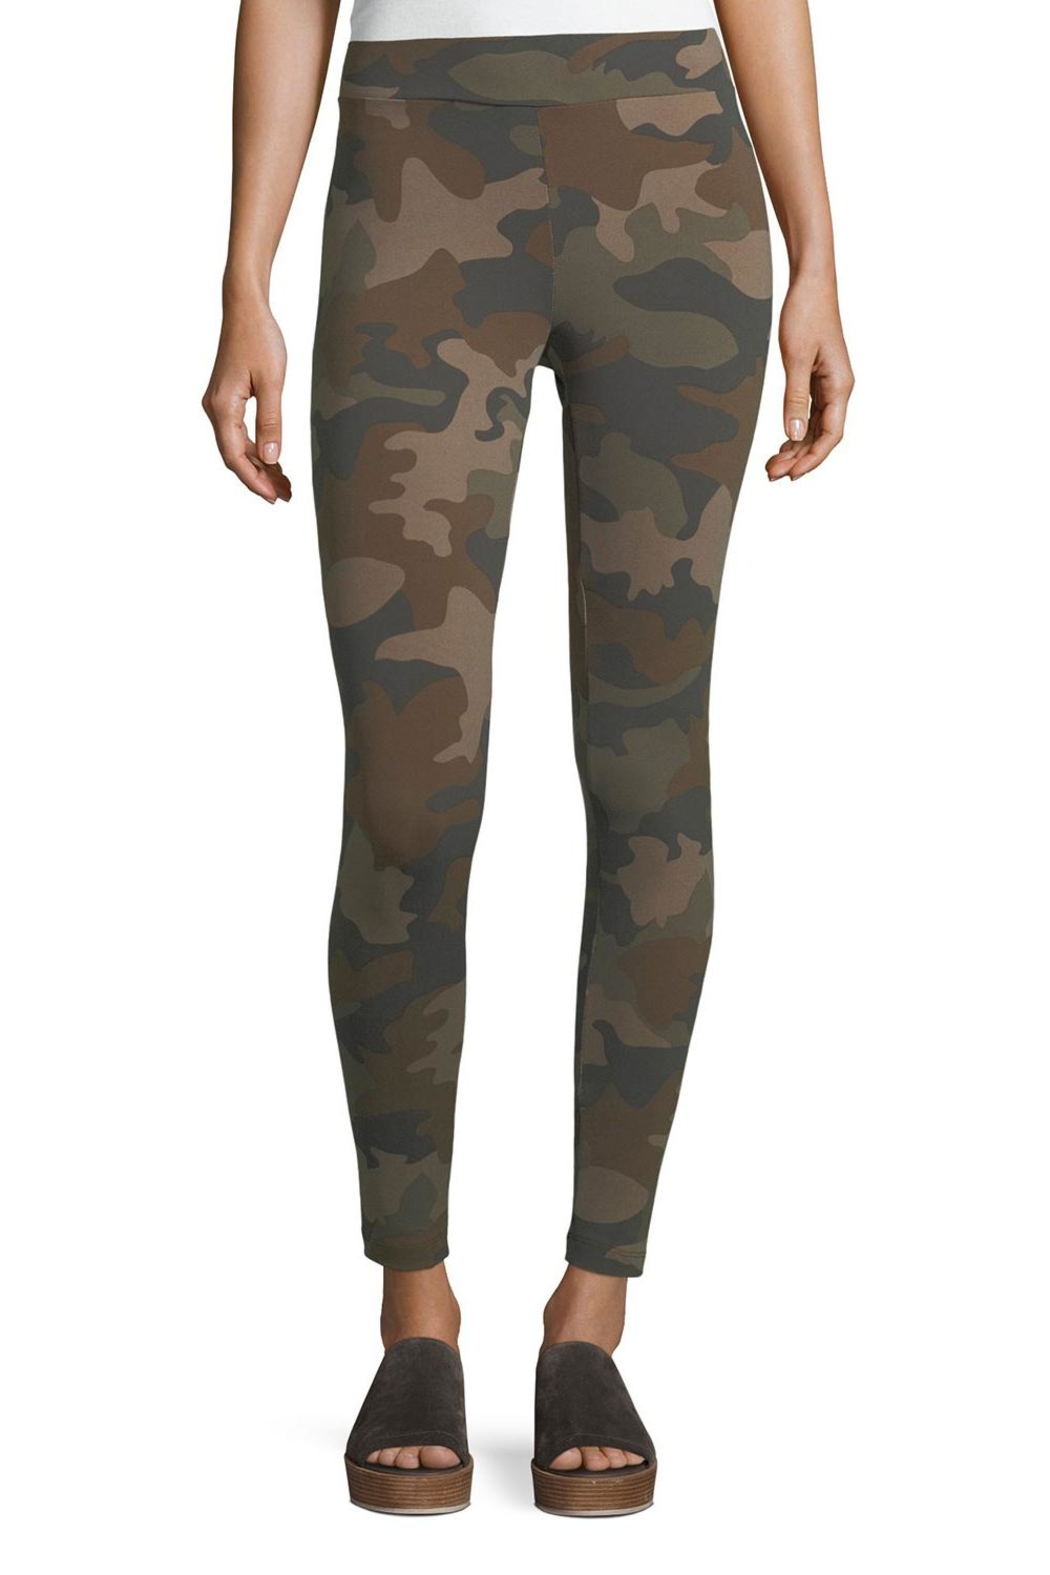 Matty M Camo Ponte Legging - Front Cropped Image